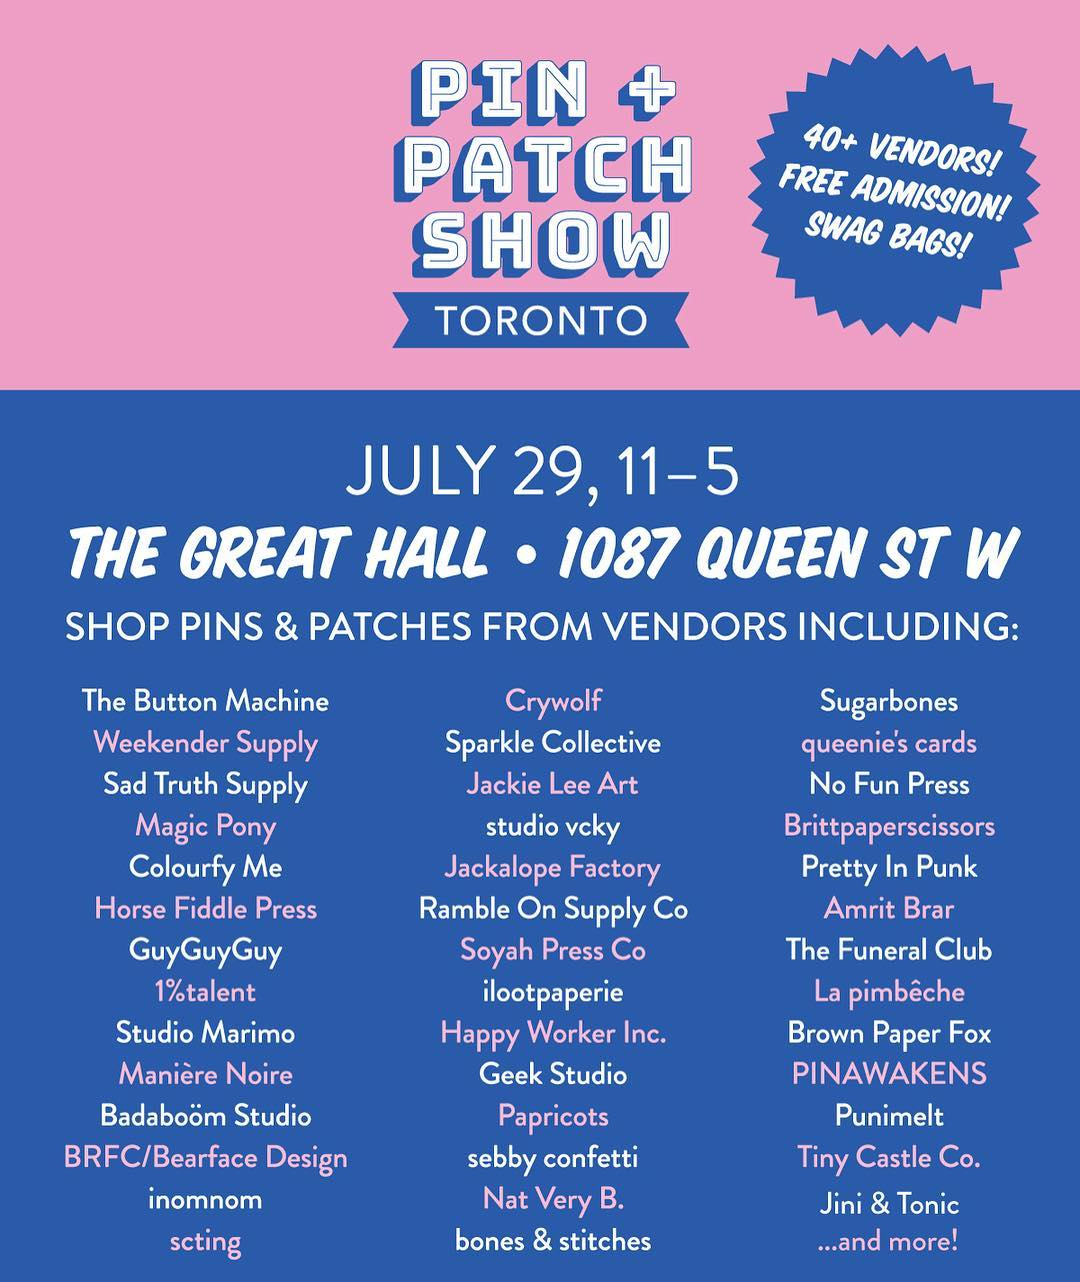 The Toronto Pin and Patch Show